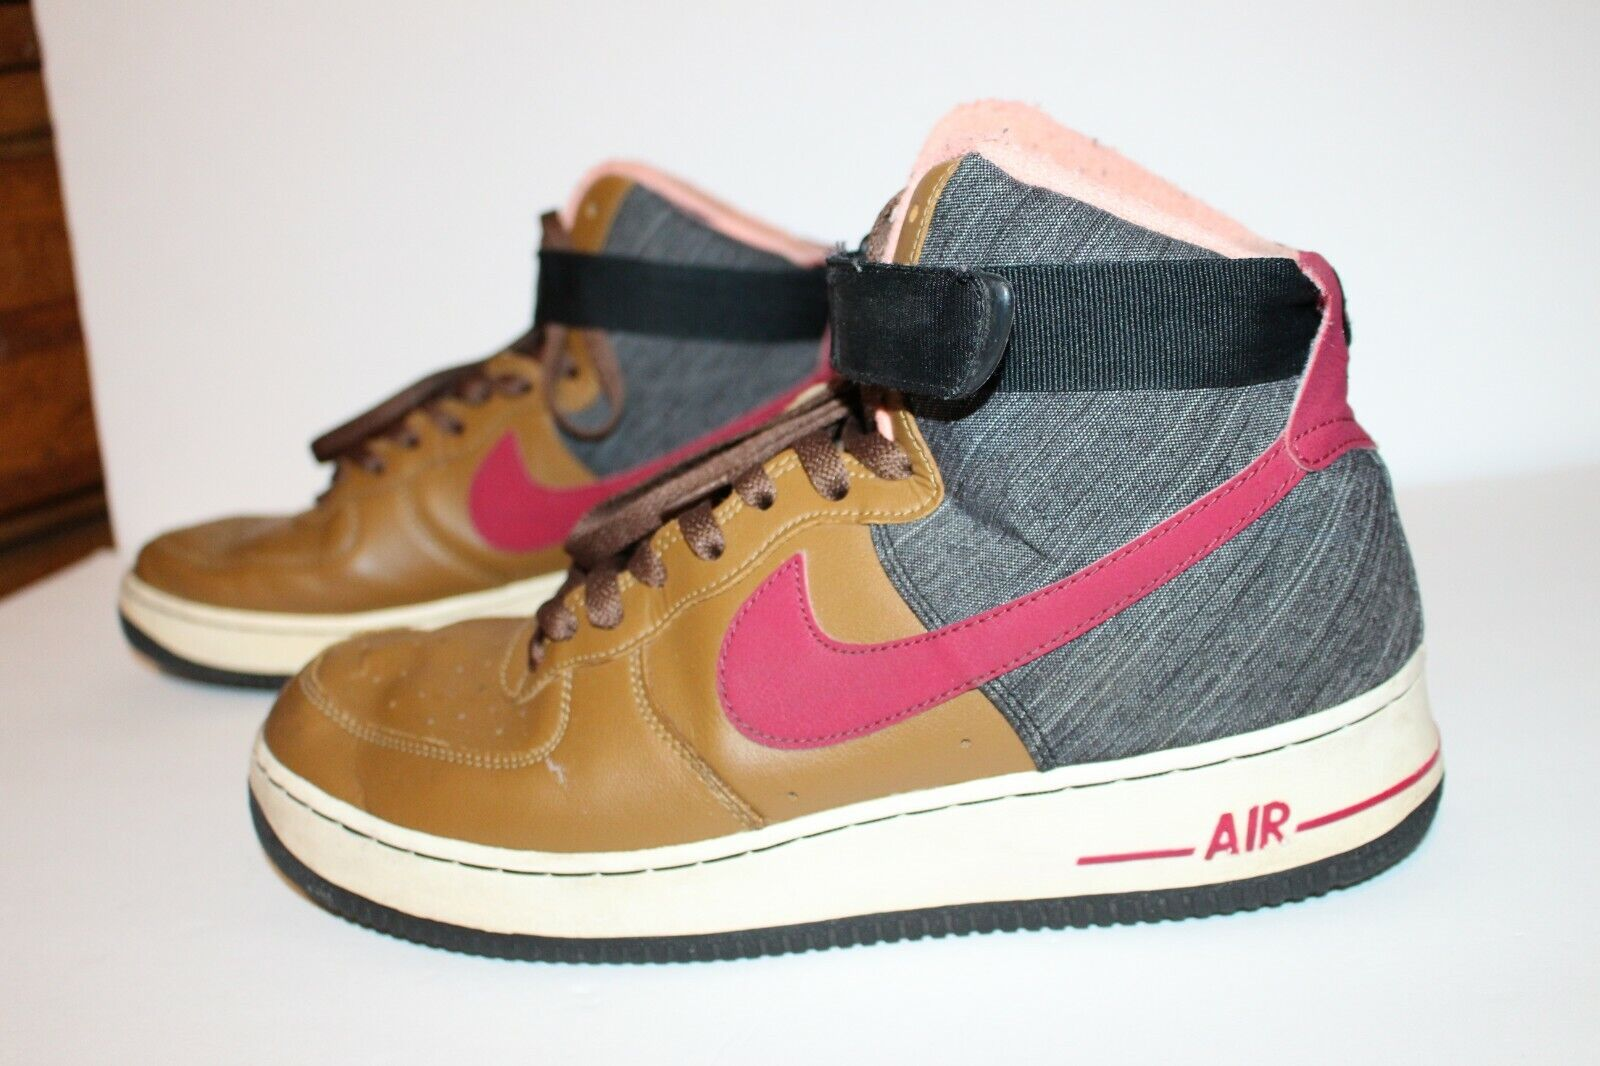 NIKE AIR FORCE 1 HIGH 07, 2013 Rare   Ale Brown, SHOES 315121 201 MENS Size 11